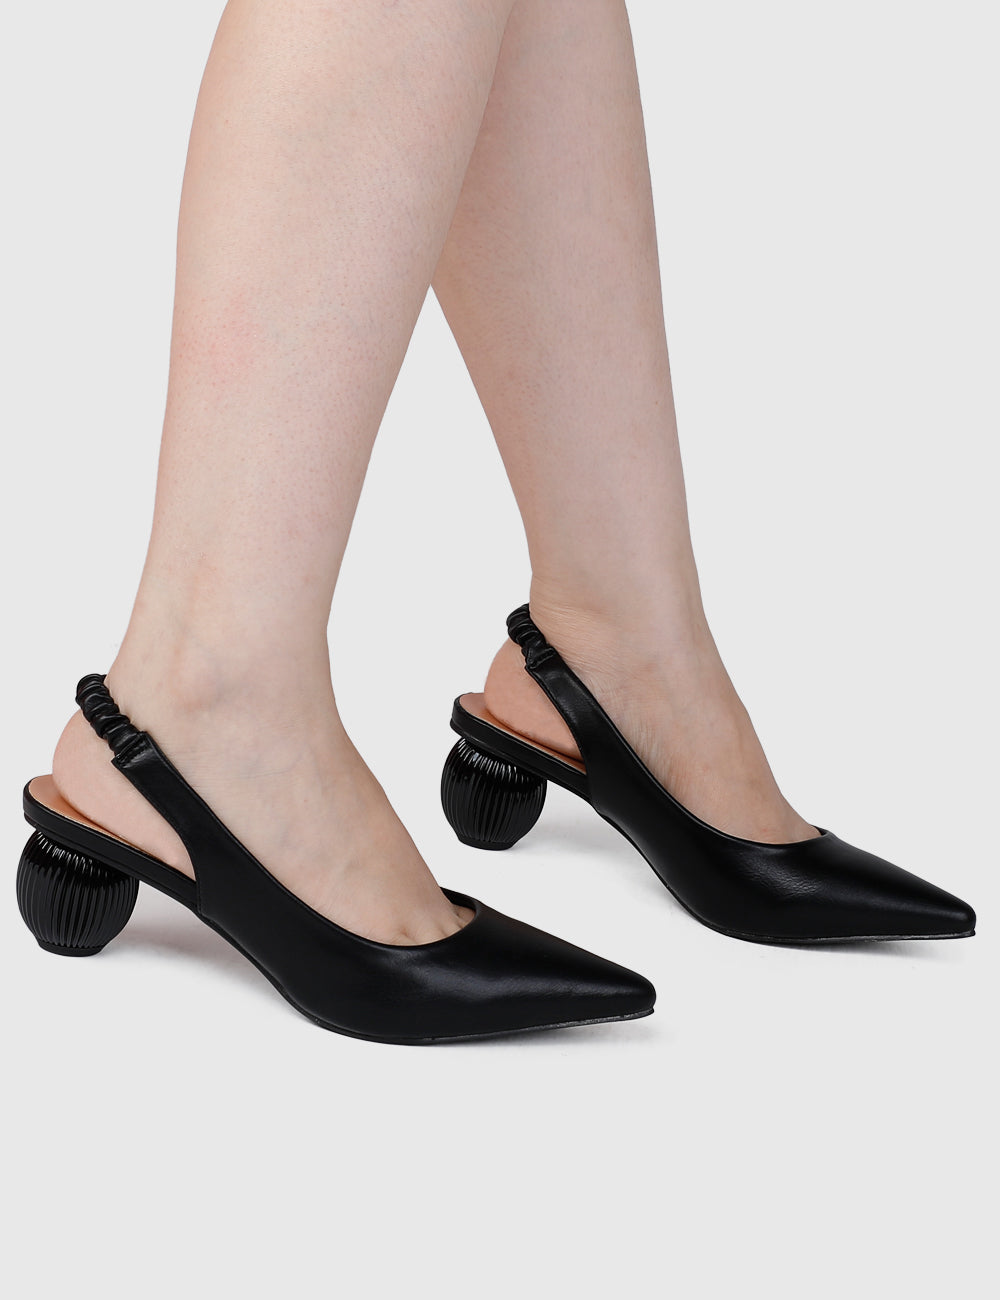 Wicked Pointed Toe Heels (Black)